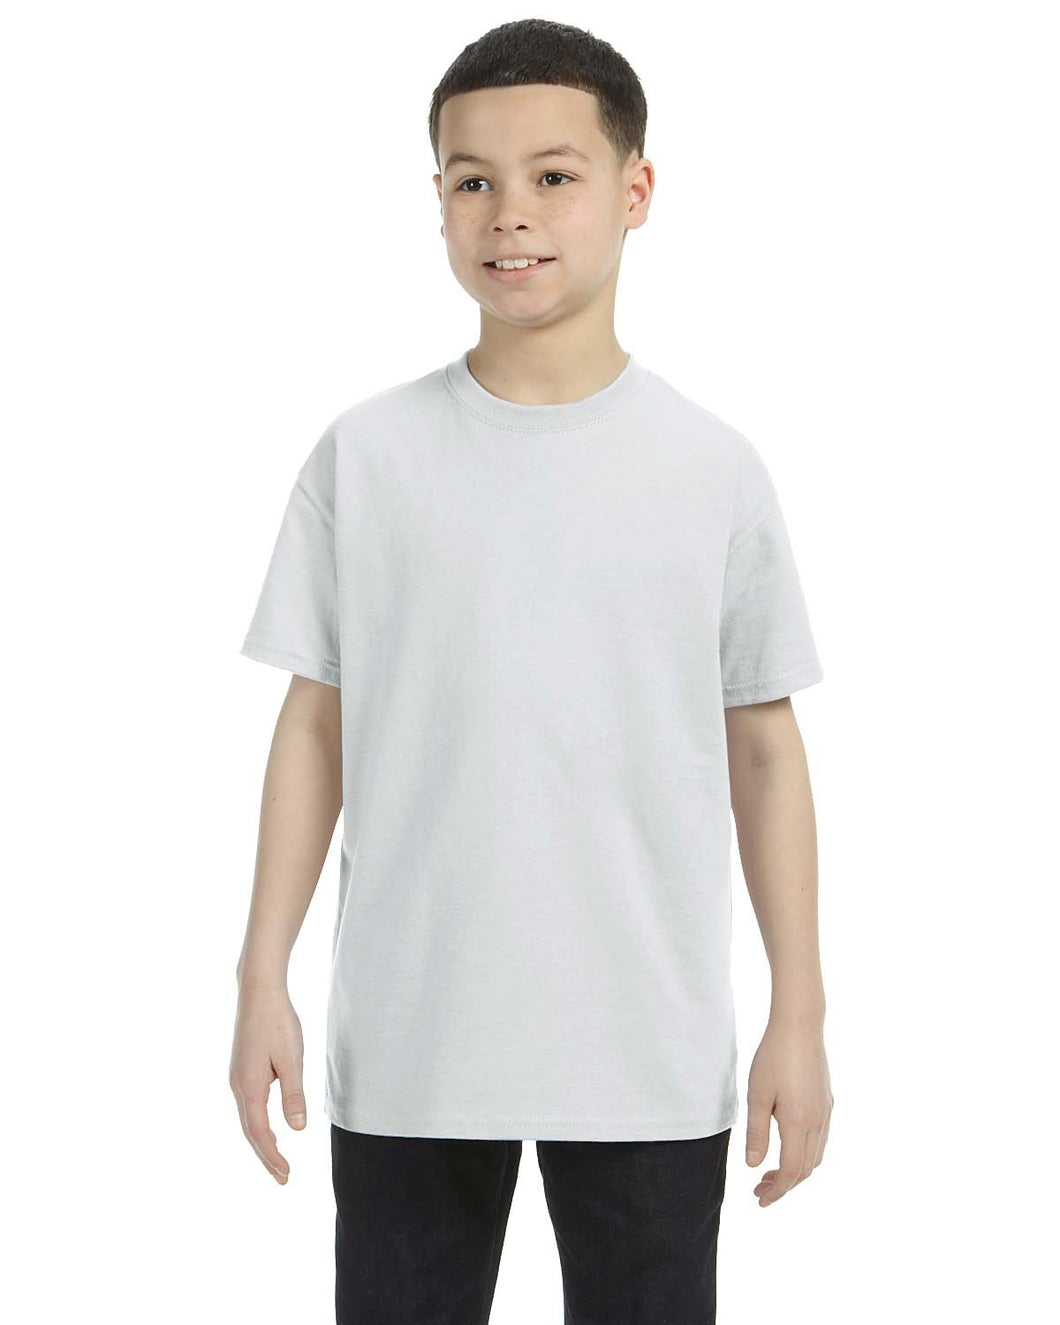 Youth Heavy Cotton Long Sleeve T-Shirt